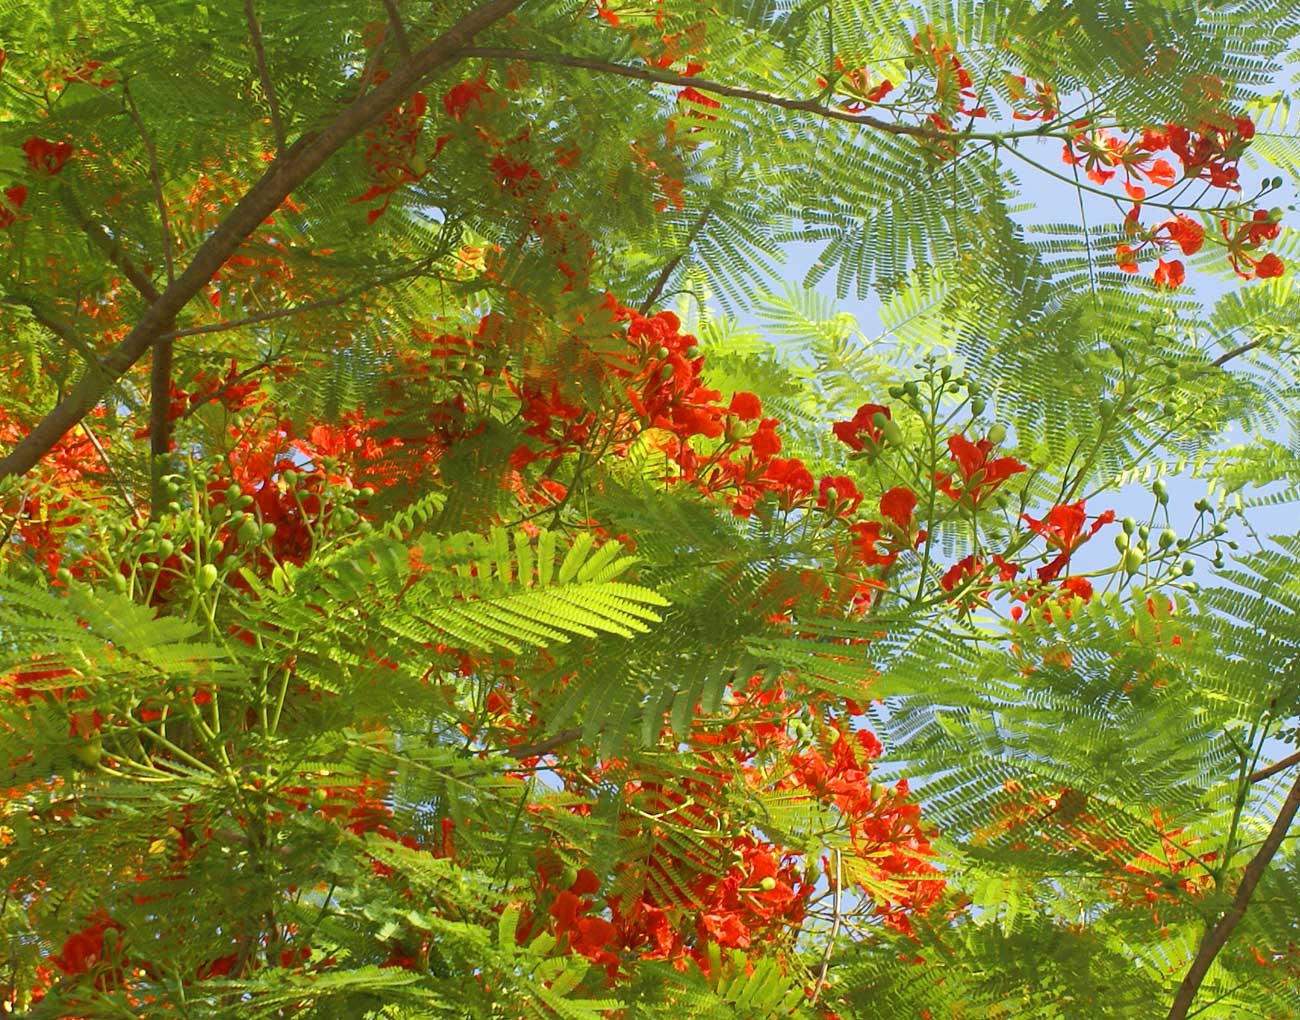 Flame Tree (Delobix regia) San Juan Street, Iloilo City Philippines